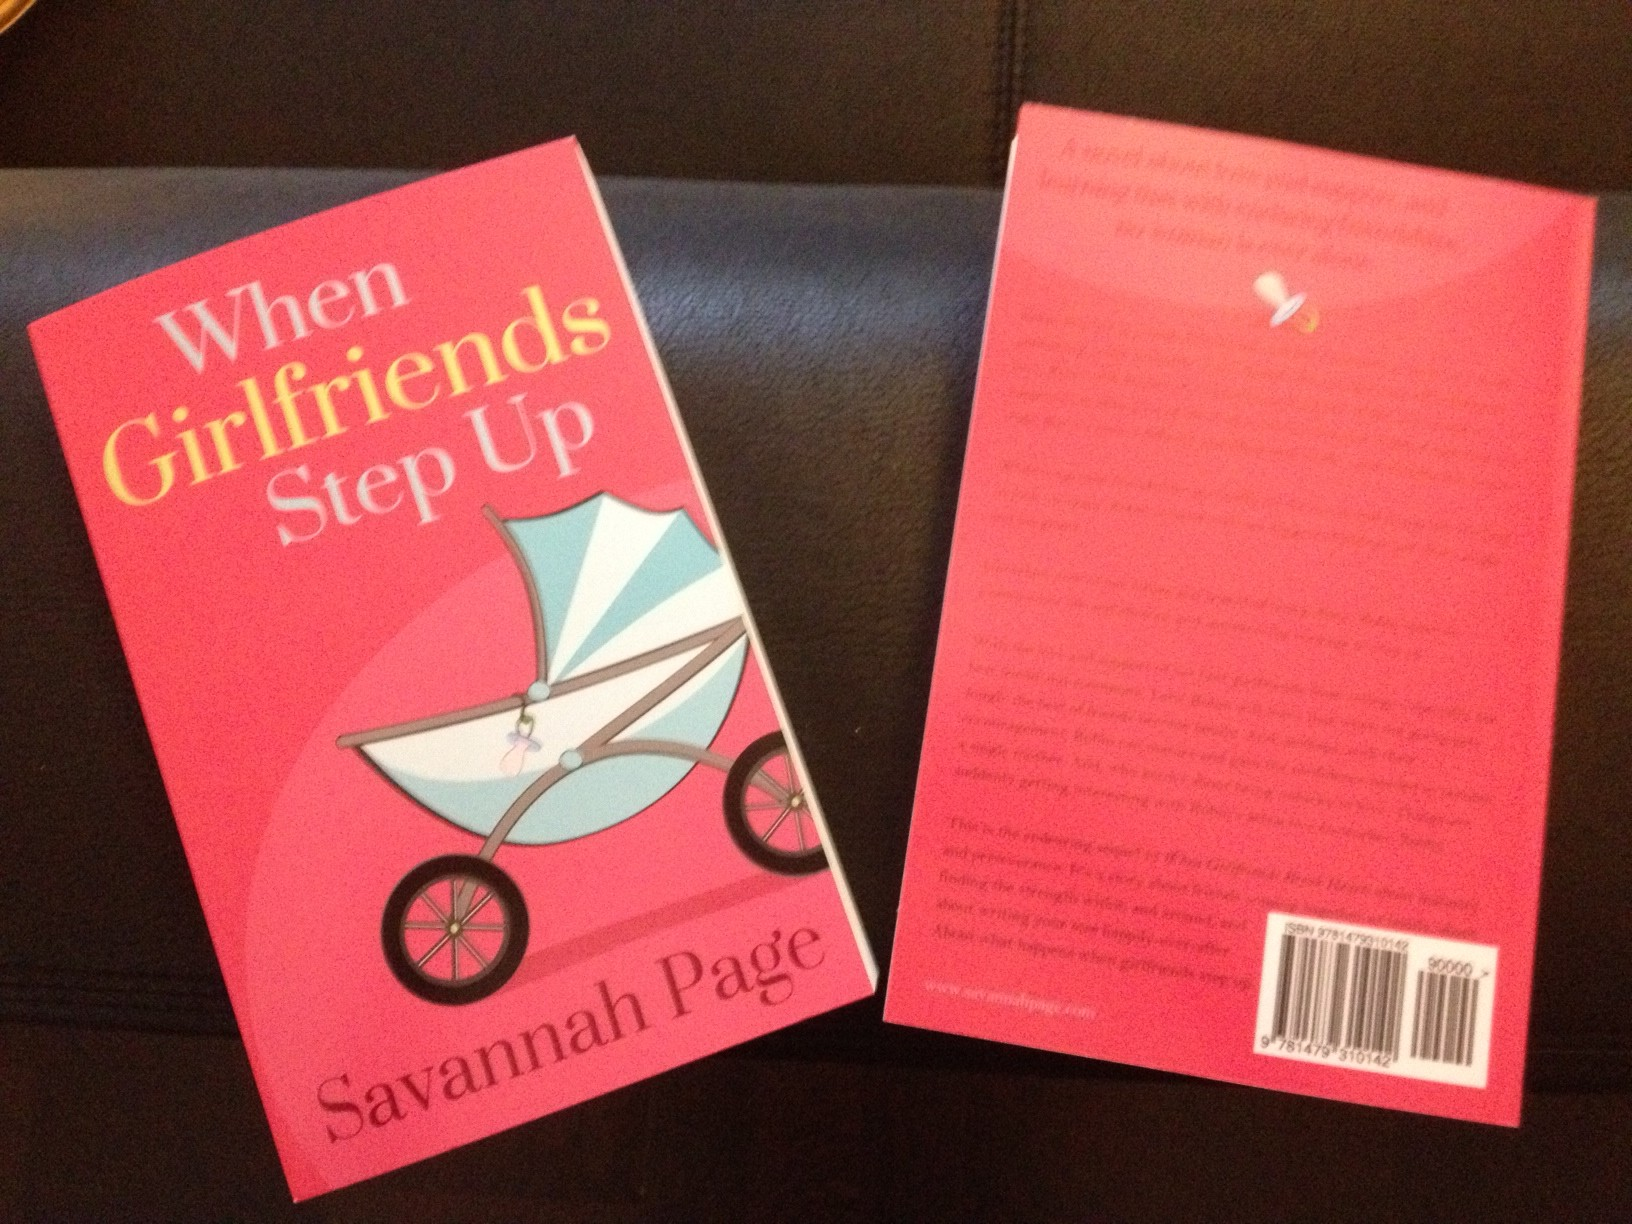 When Girlfriends Step Up Paperback - Savannah Page